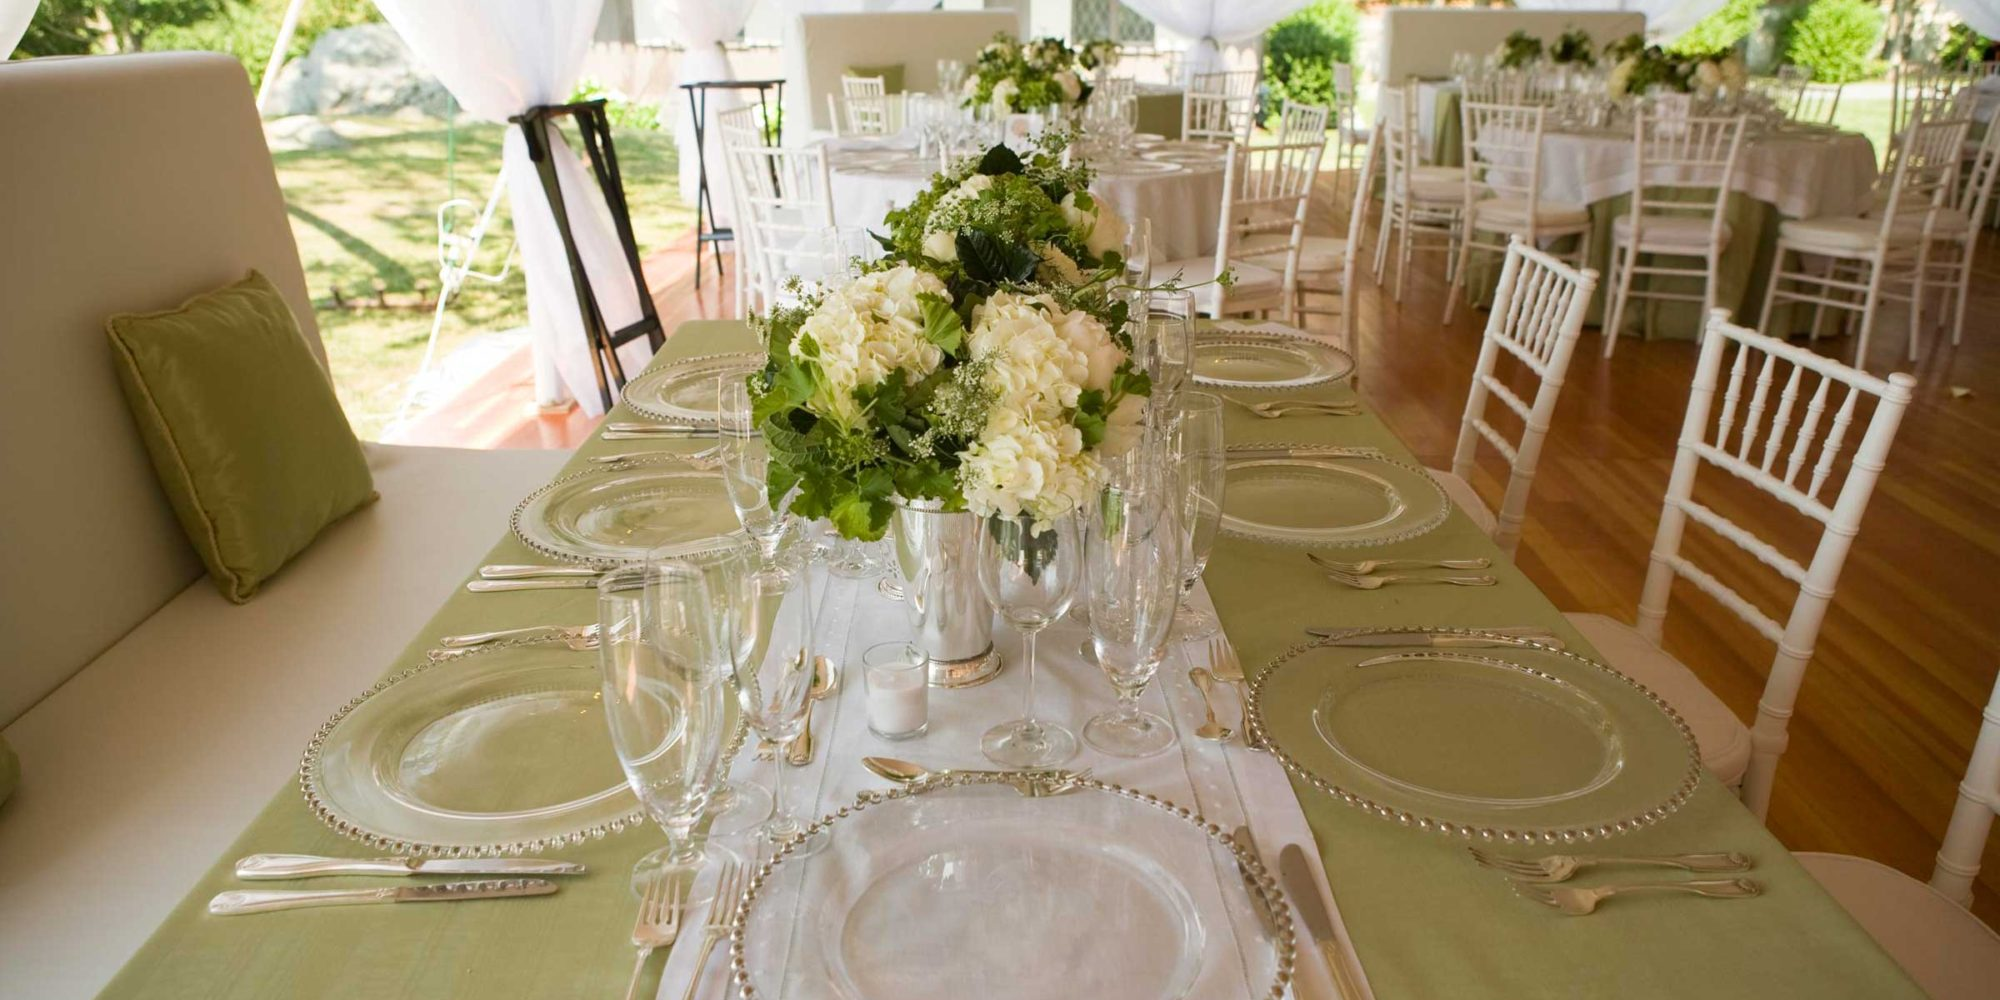 Chair Rentals Fredericksburg Check Out Our Chair Rentals For